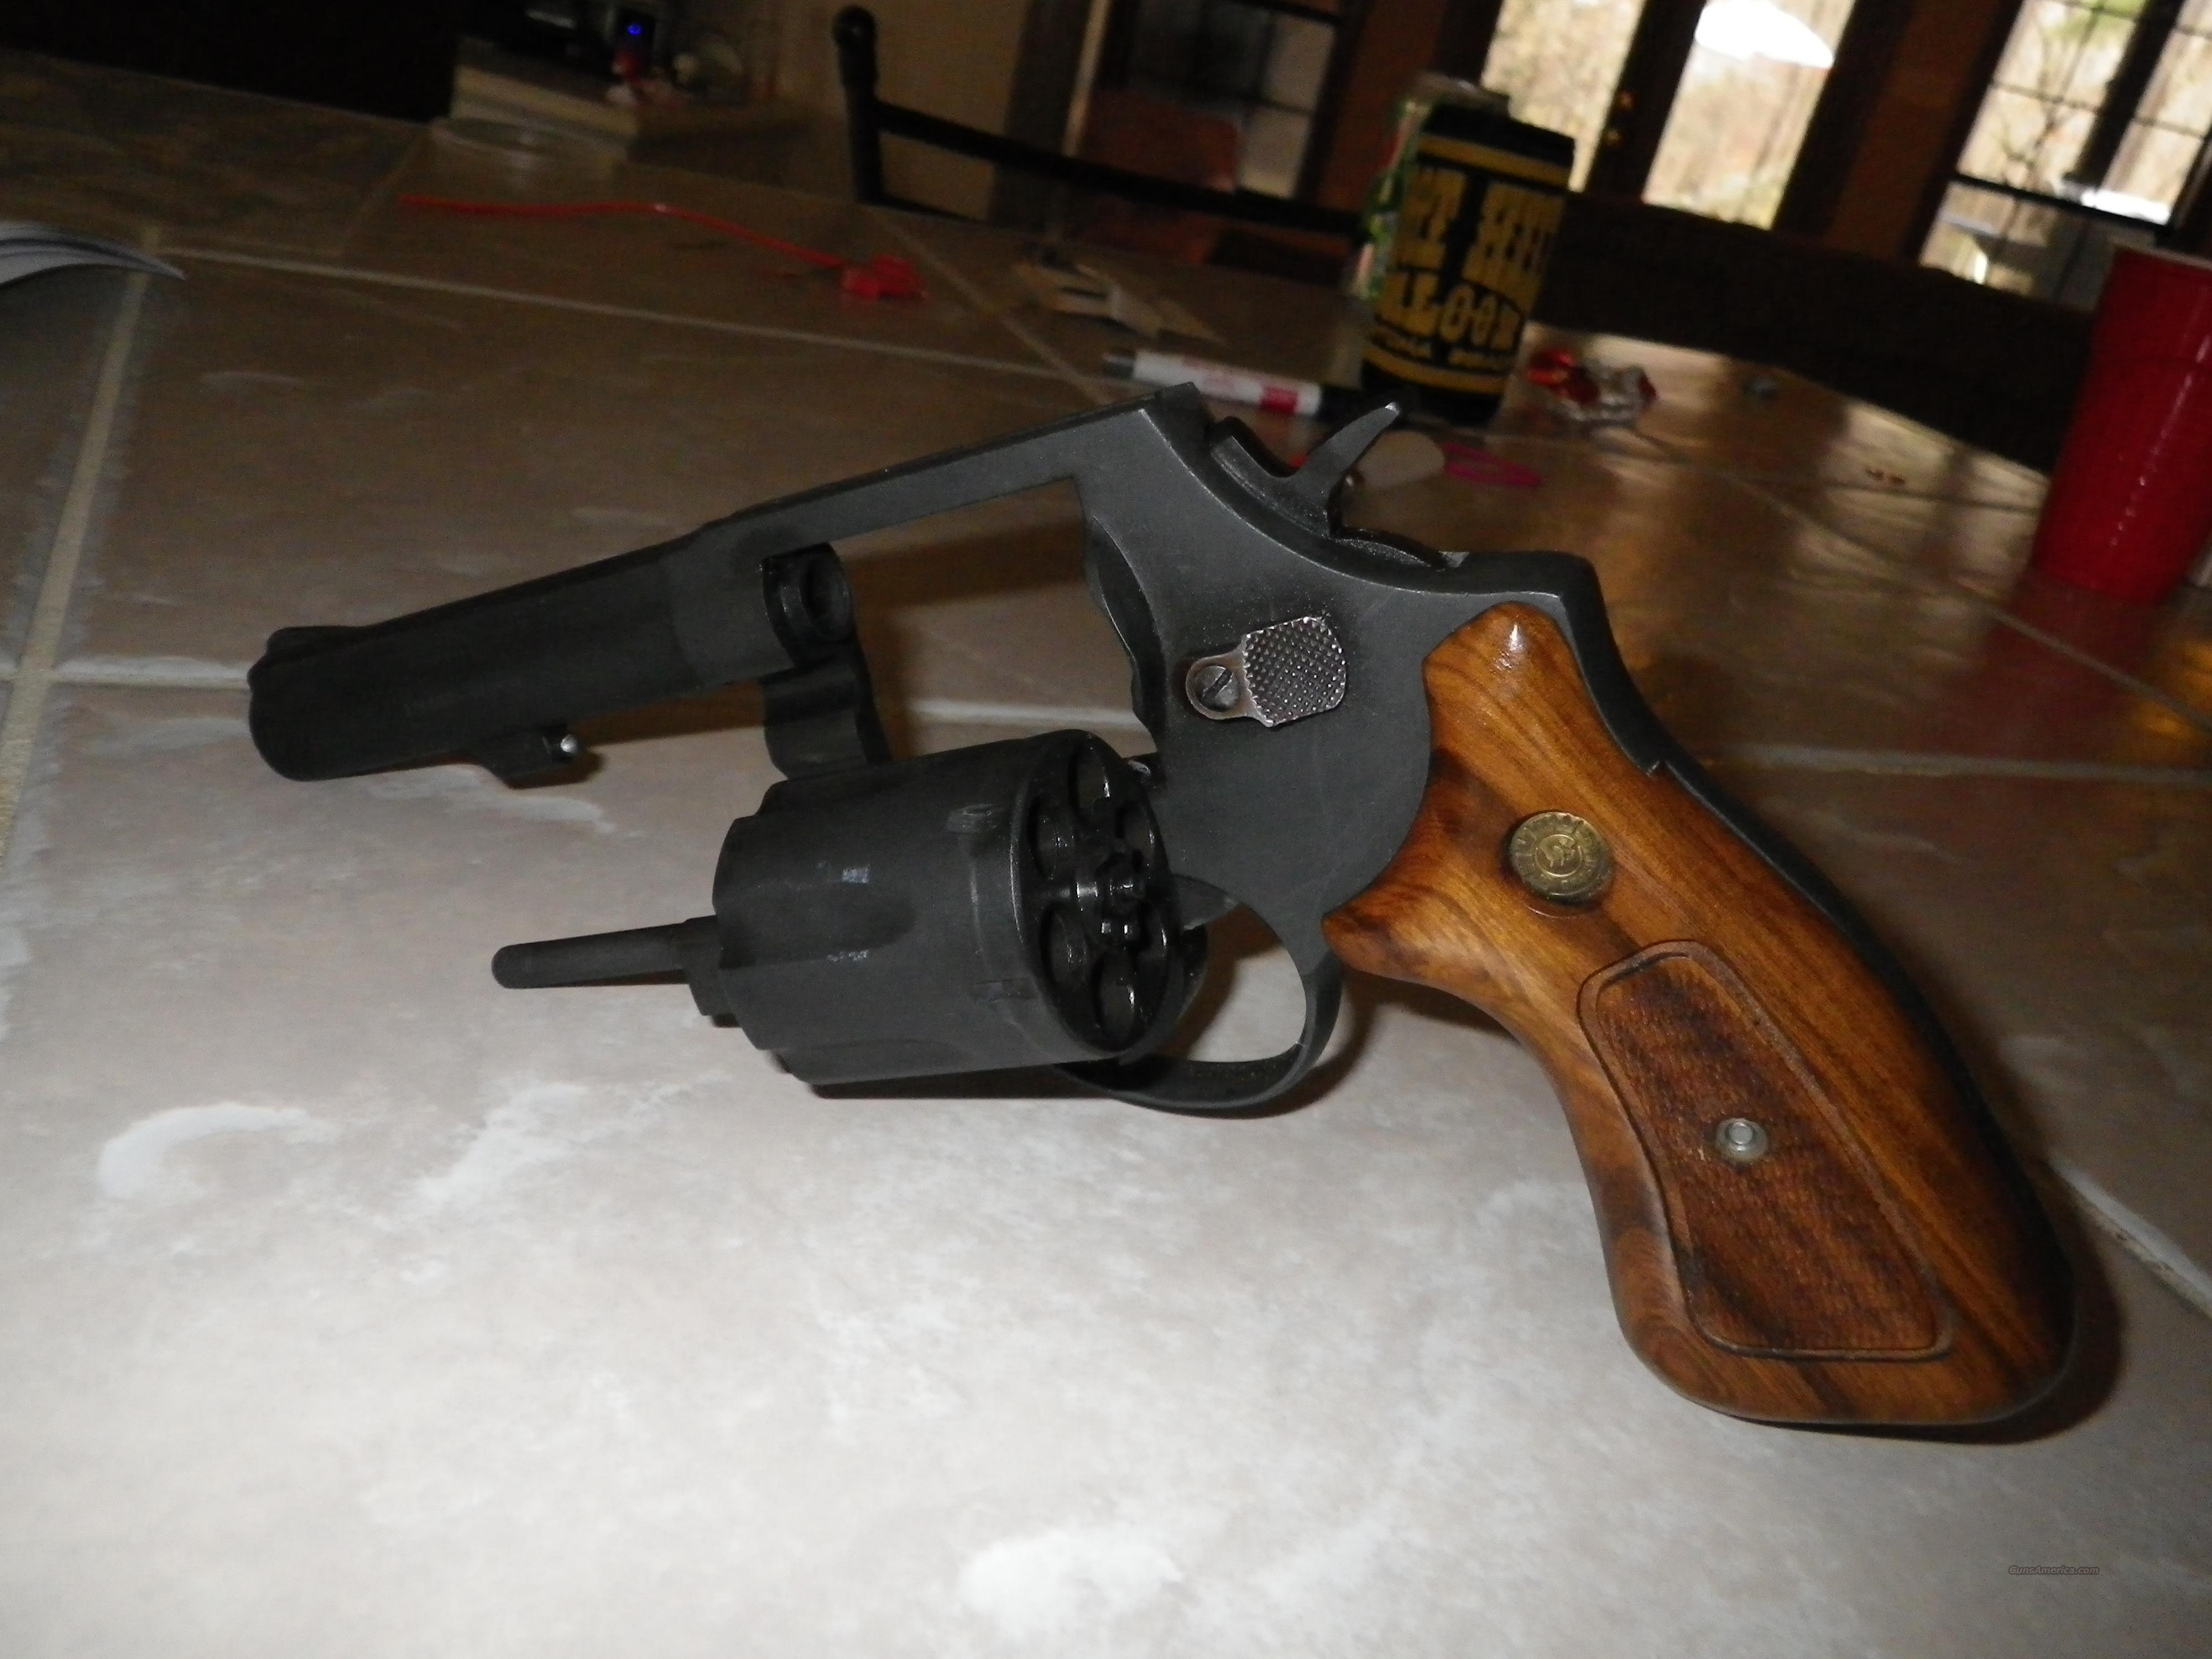 taurus MD 82 parkerized great condition  Guns > Pistols > Taurus Pistols/Revolvers > Revolvers